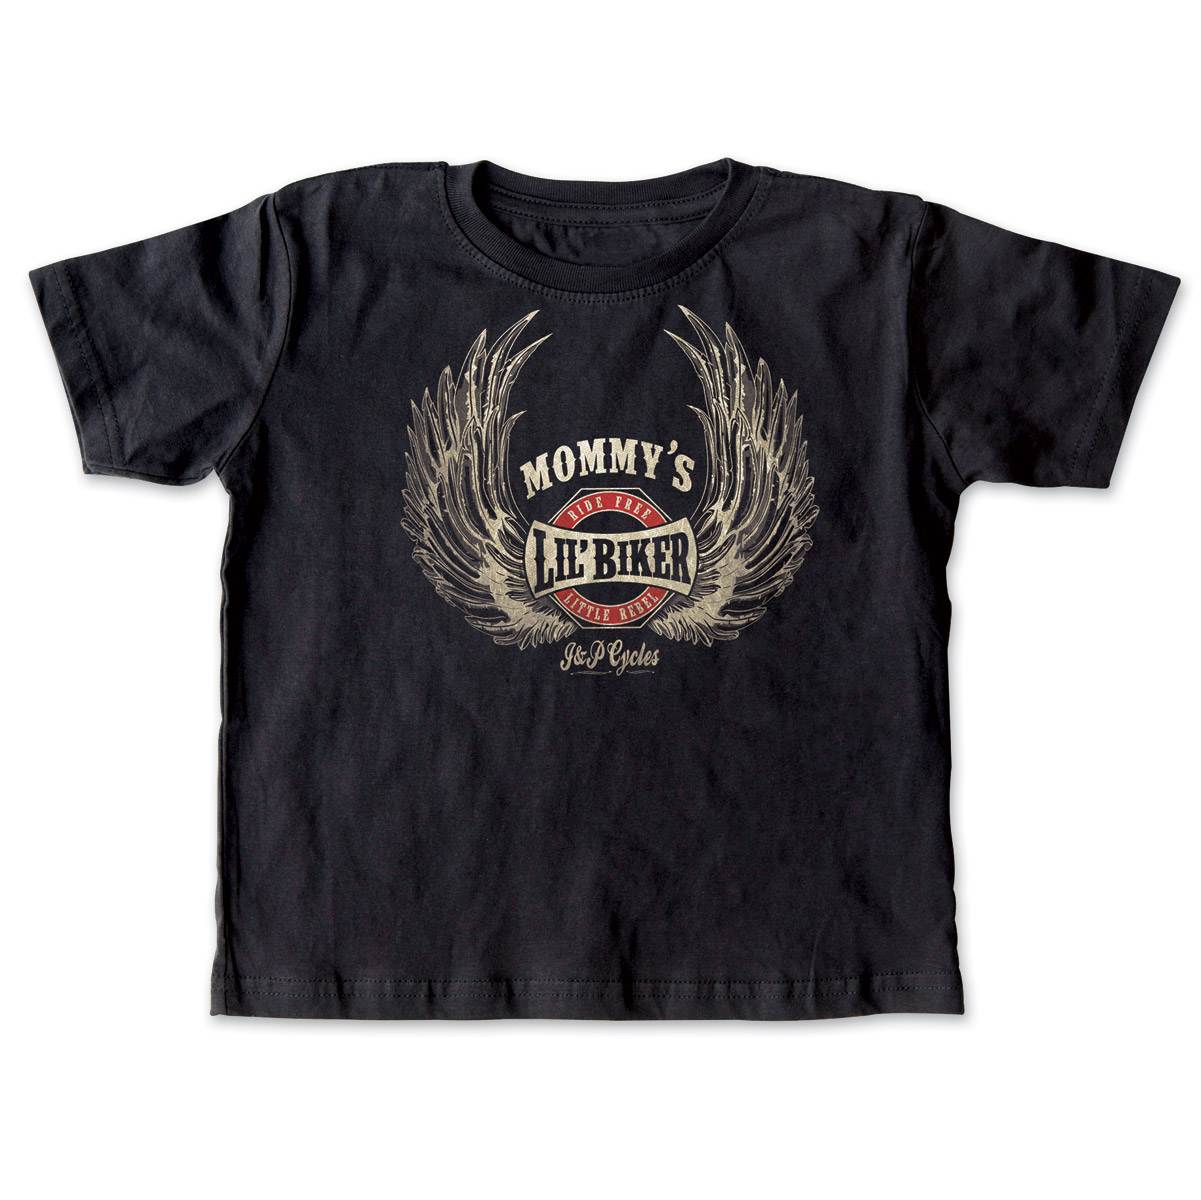 J&P Cycles Mommy's Lil' Wings Black Toddler Tee